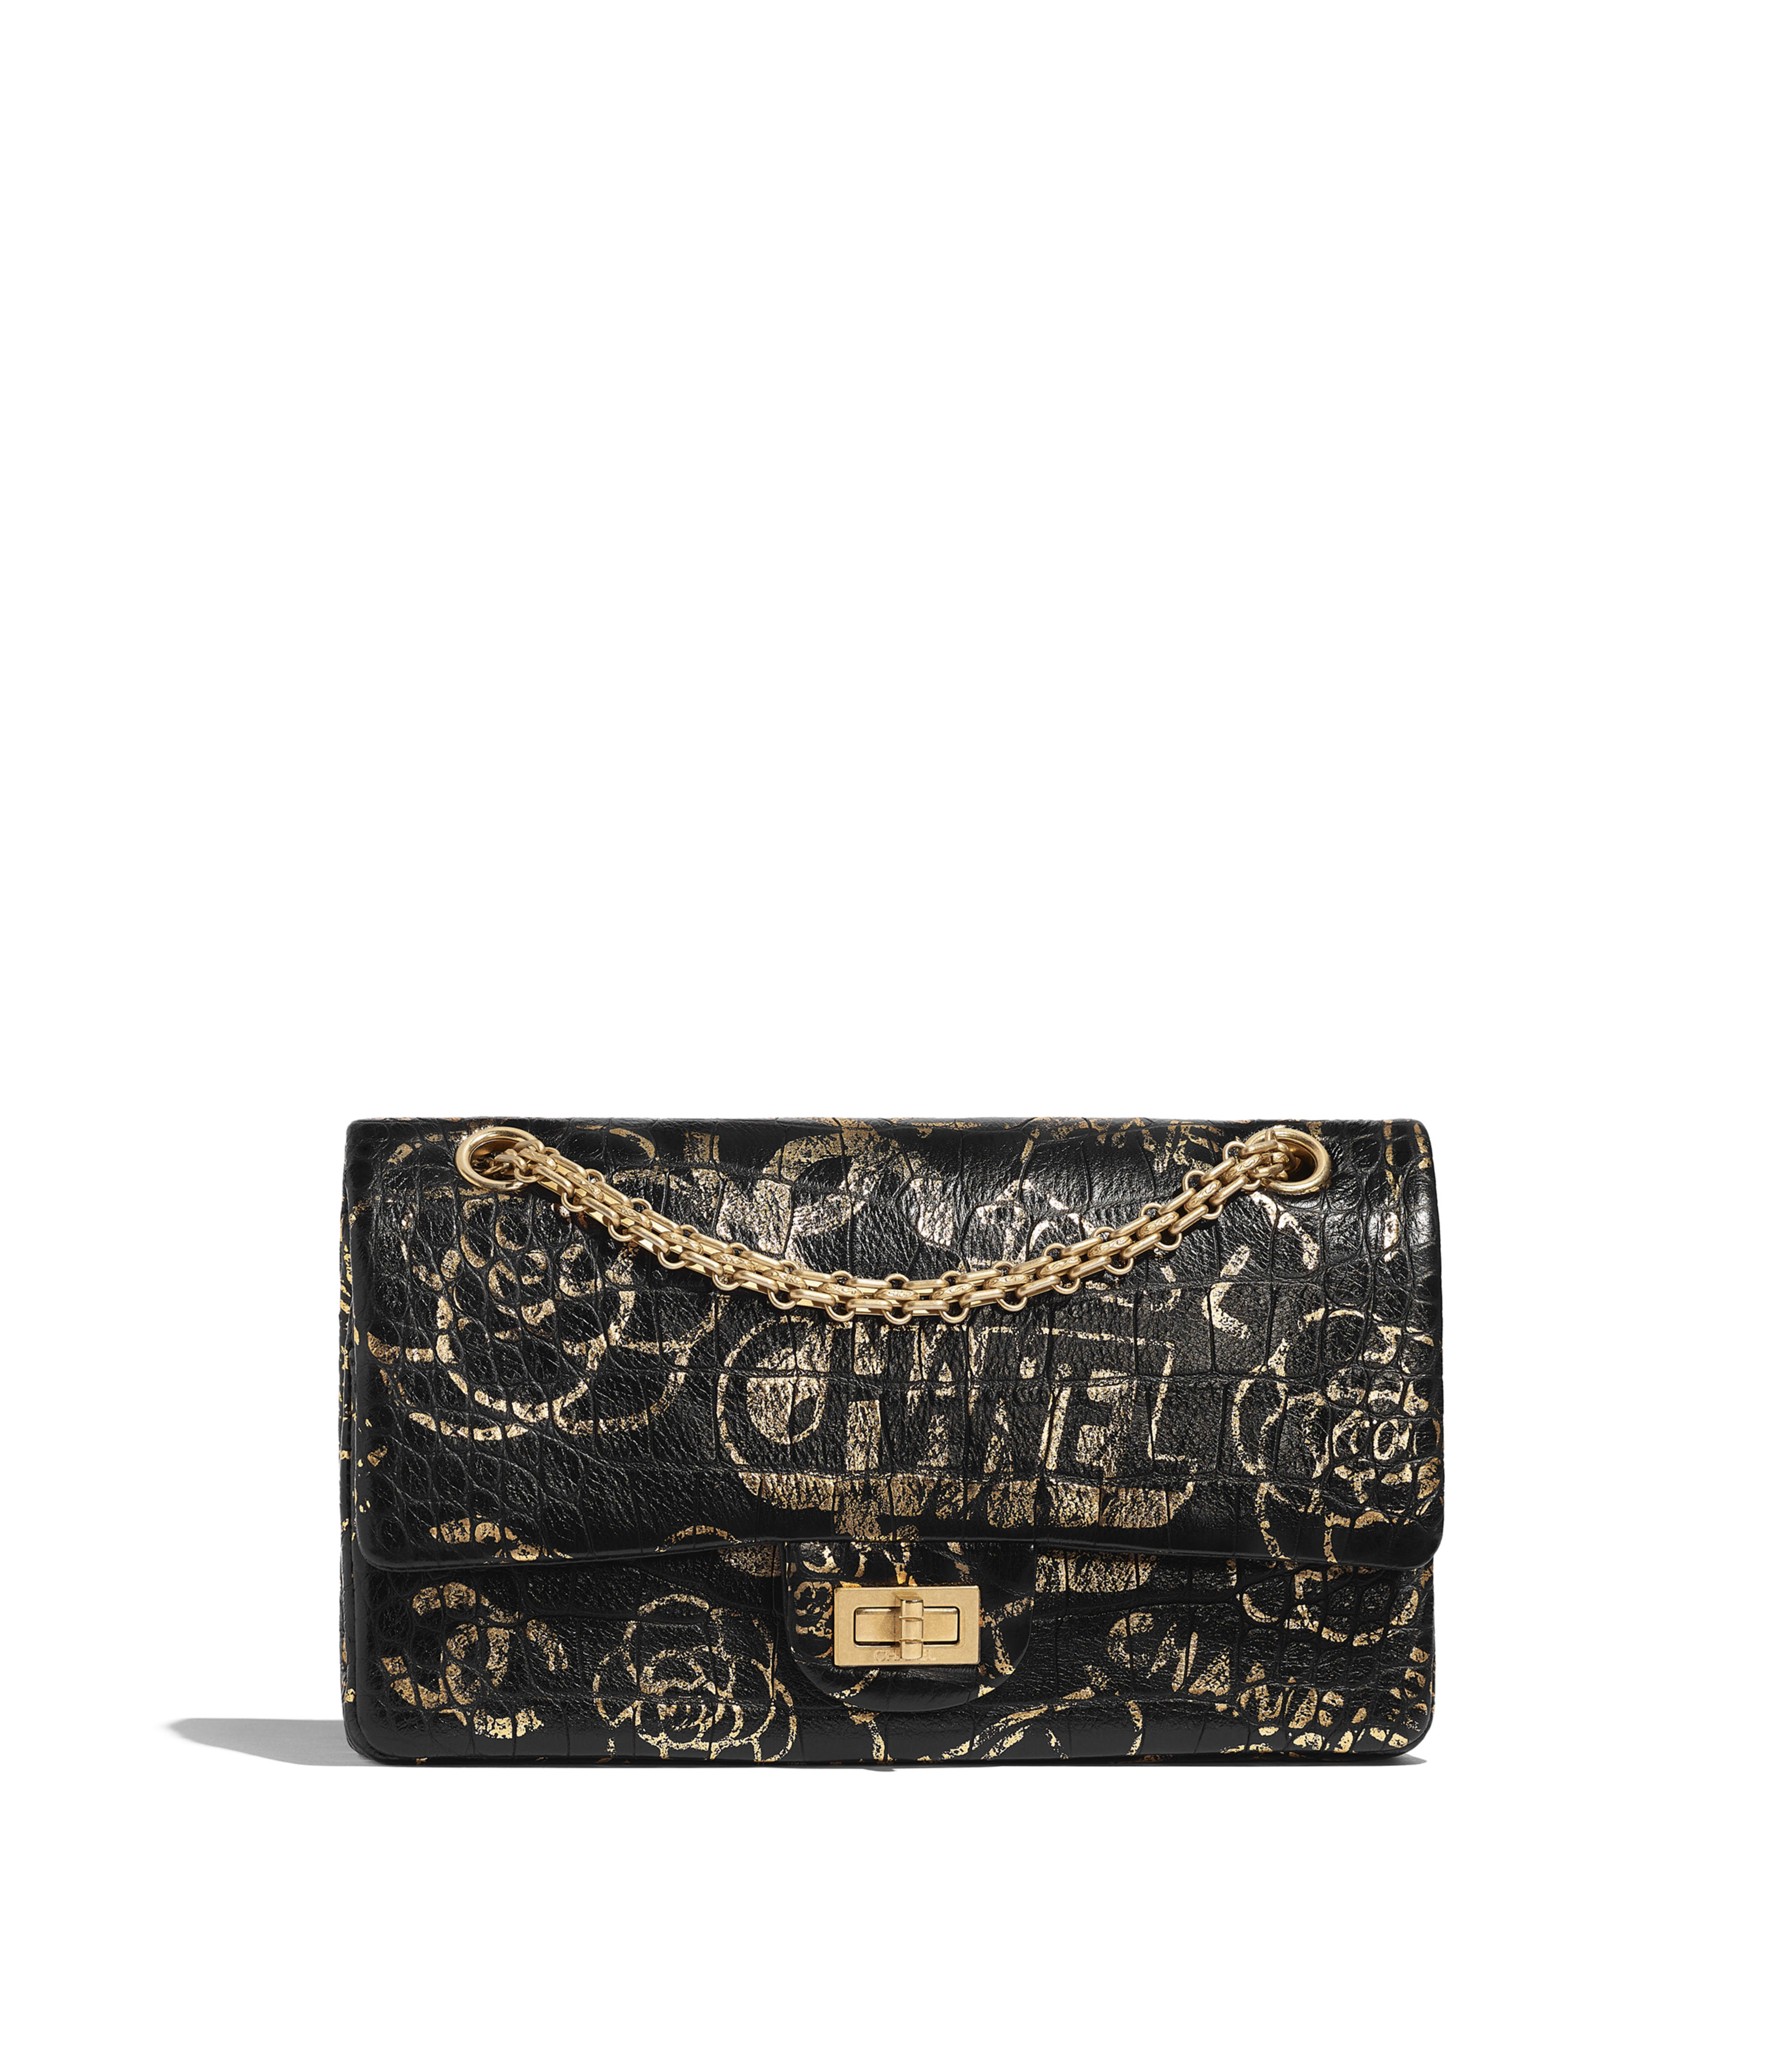 aebcb7ad5 2.55 Handbag Crocodile Embossed Printed Leather & Gold-Tone Metal, Black &  Gold Ref. A37586B00979N0784